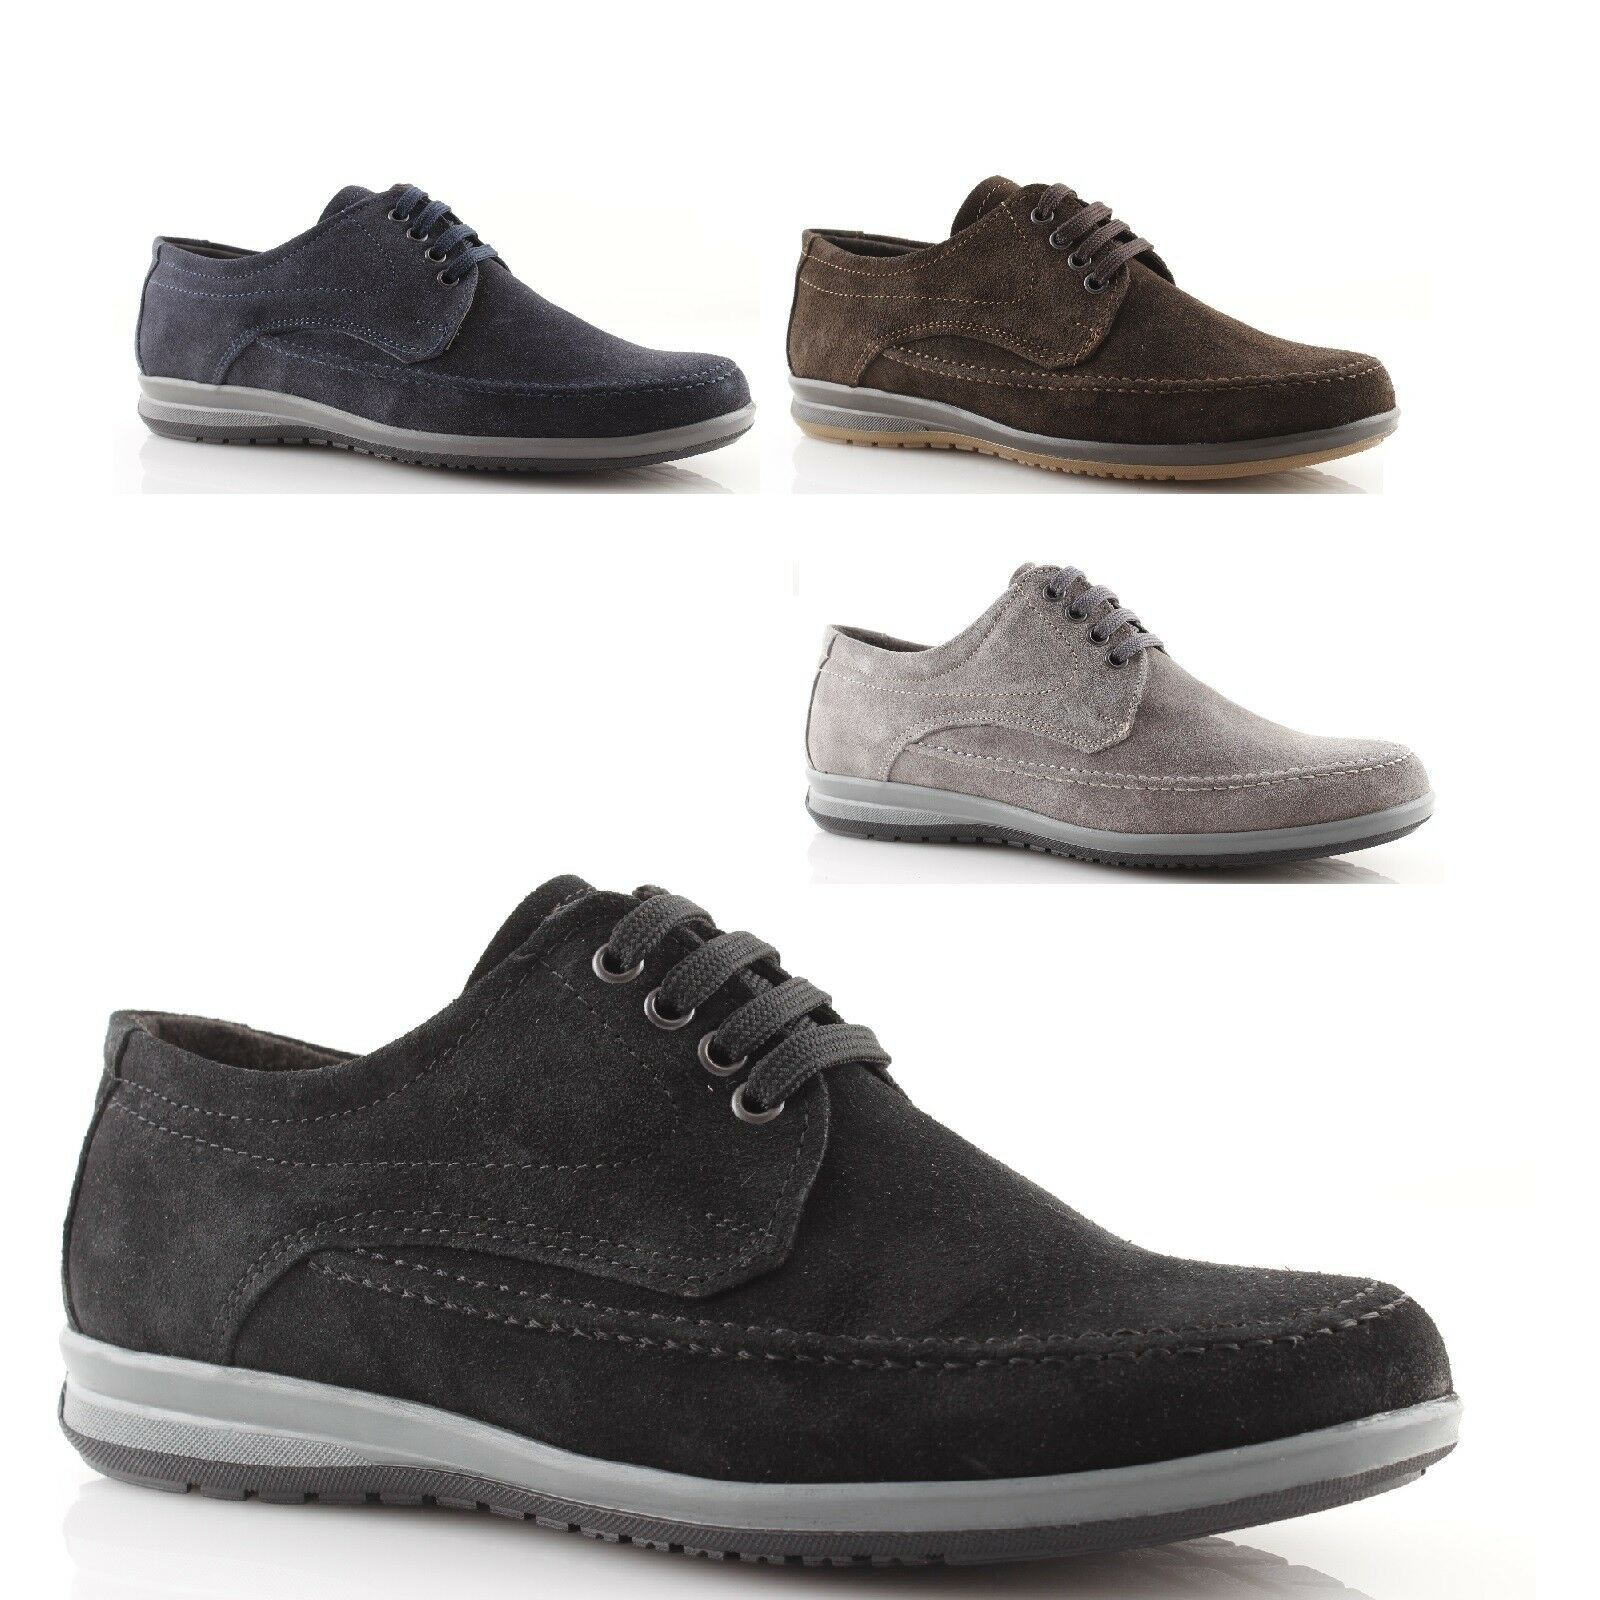 Men's shoes for soft winter loafers leather suede italian